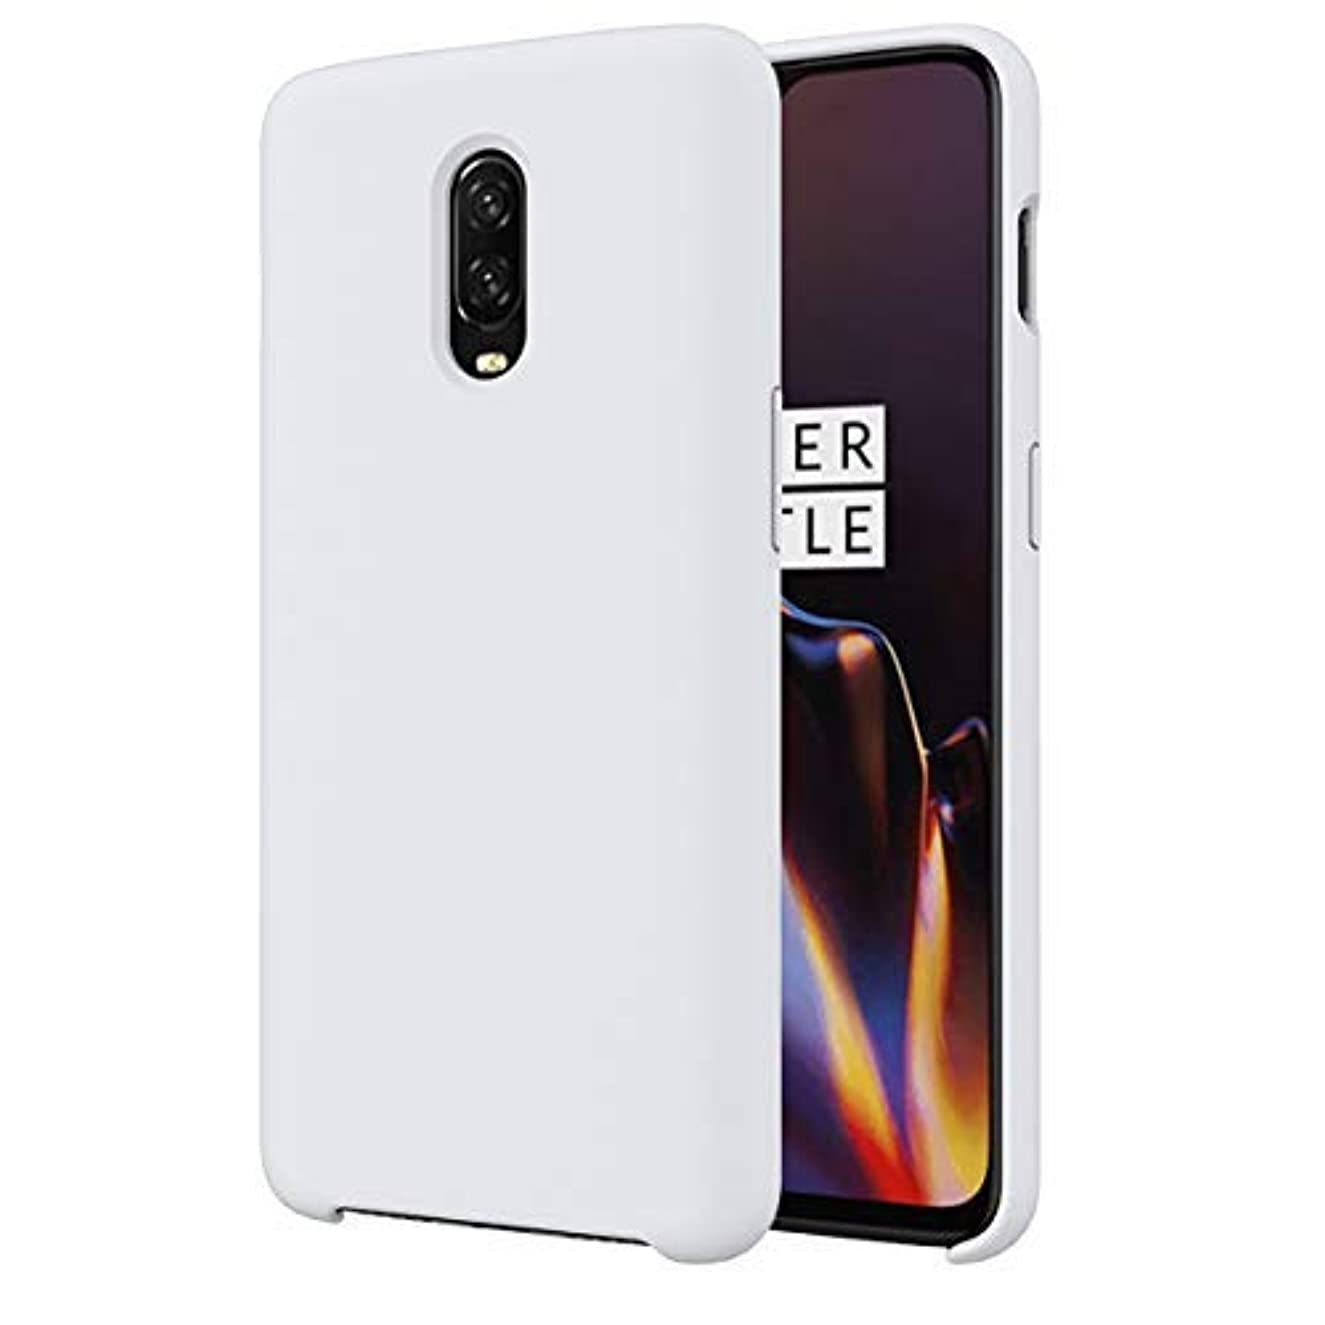 Case Compatible with OnePlus 6 Soft TPU Shockproof Damping OnePlus Six OnePlus 6T 1+6T Cover (White, OnePlus 6T)